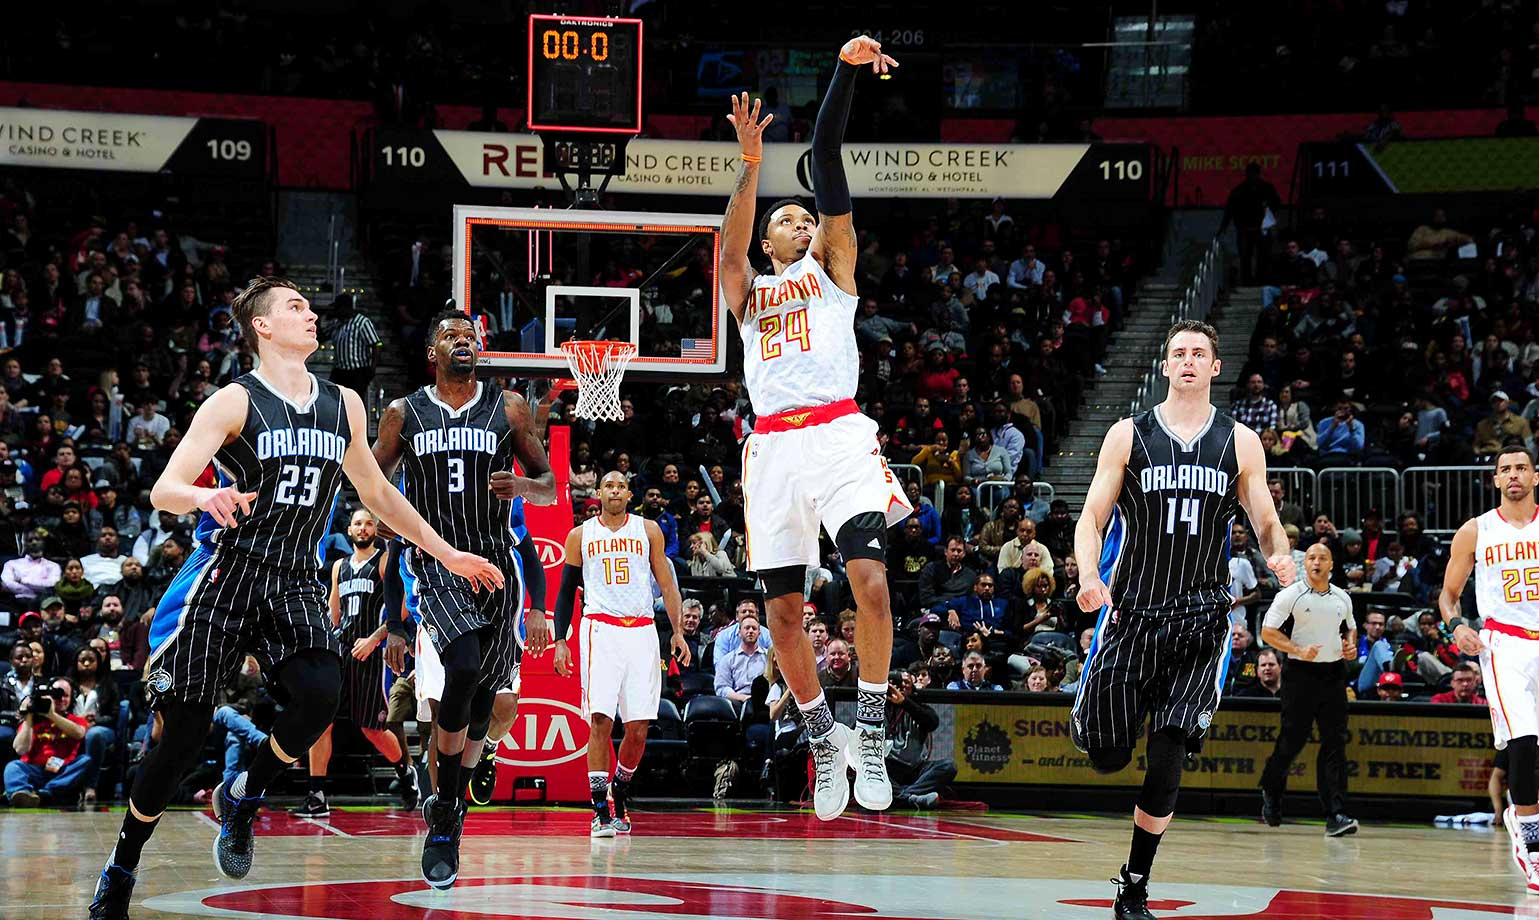 Kent Bazemore shoots from long distance against the Orlando Magic, trying to beat the clock.